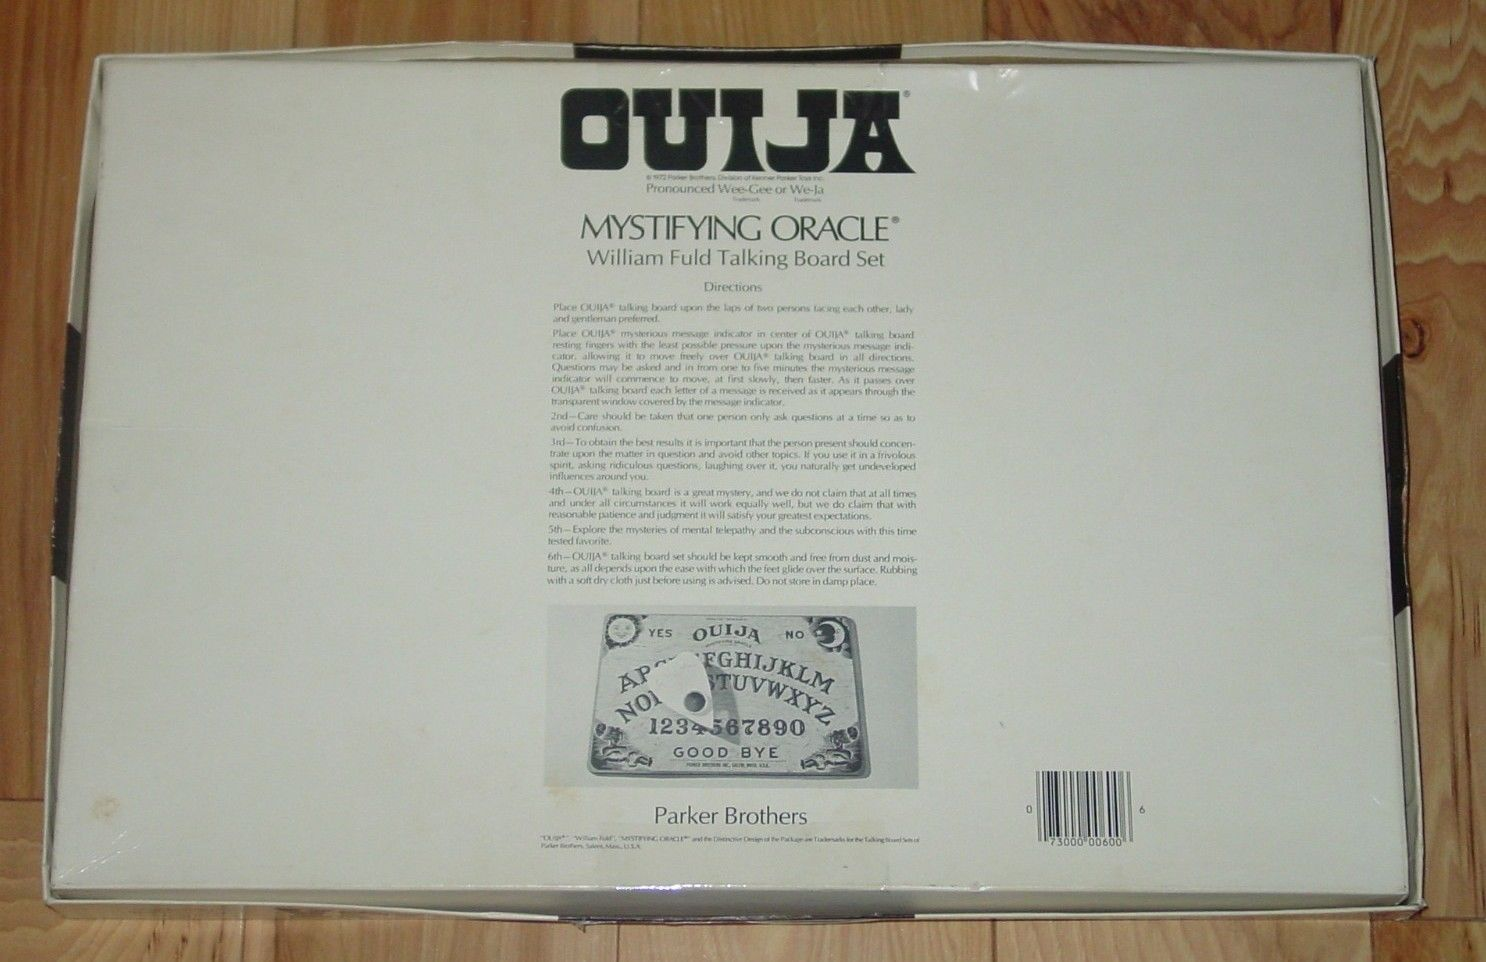 OUIJA MYSTIFYING ORACLE WILLIAM FULD BOARD SET 1972 PARKER BROTHERS COMPLETE image 2